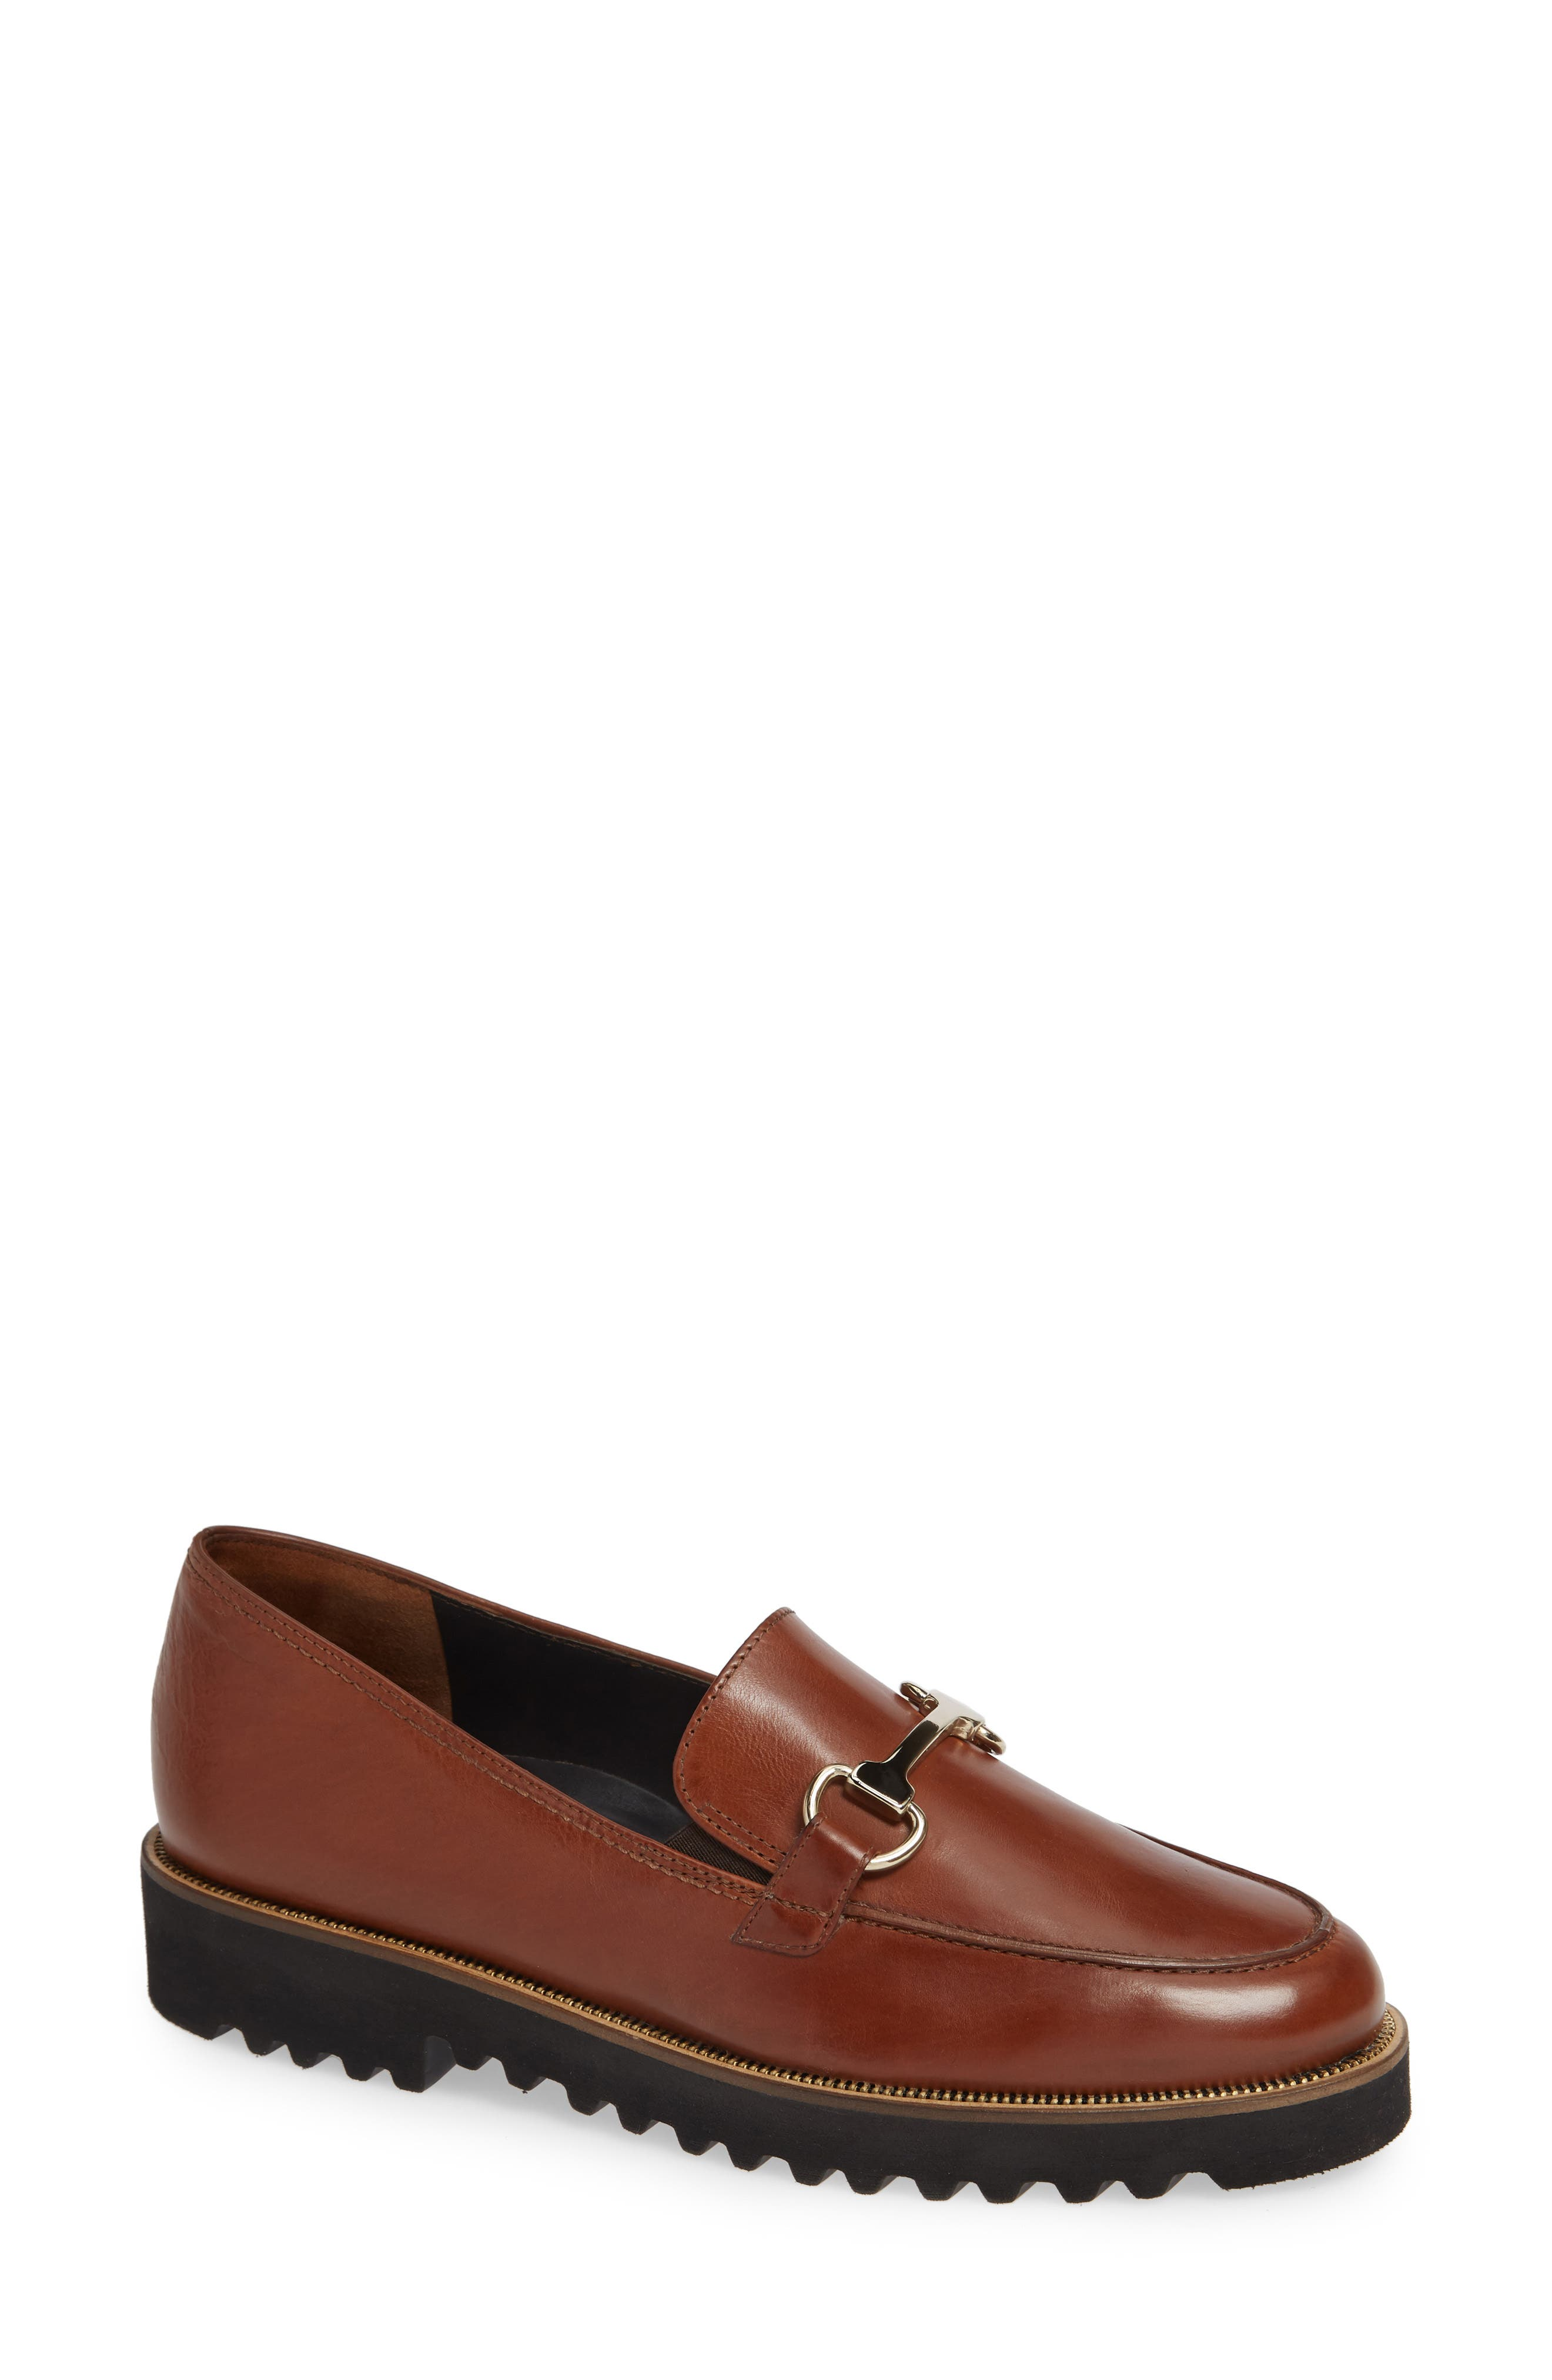 Topper Loafer,                             Main thumbnail 1, color,                             COGNAC LEATHER